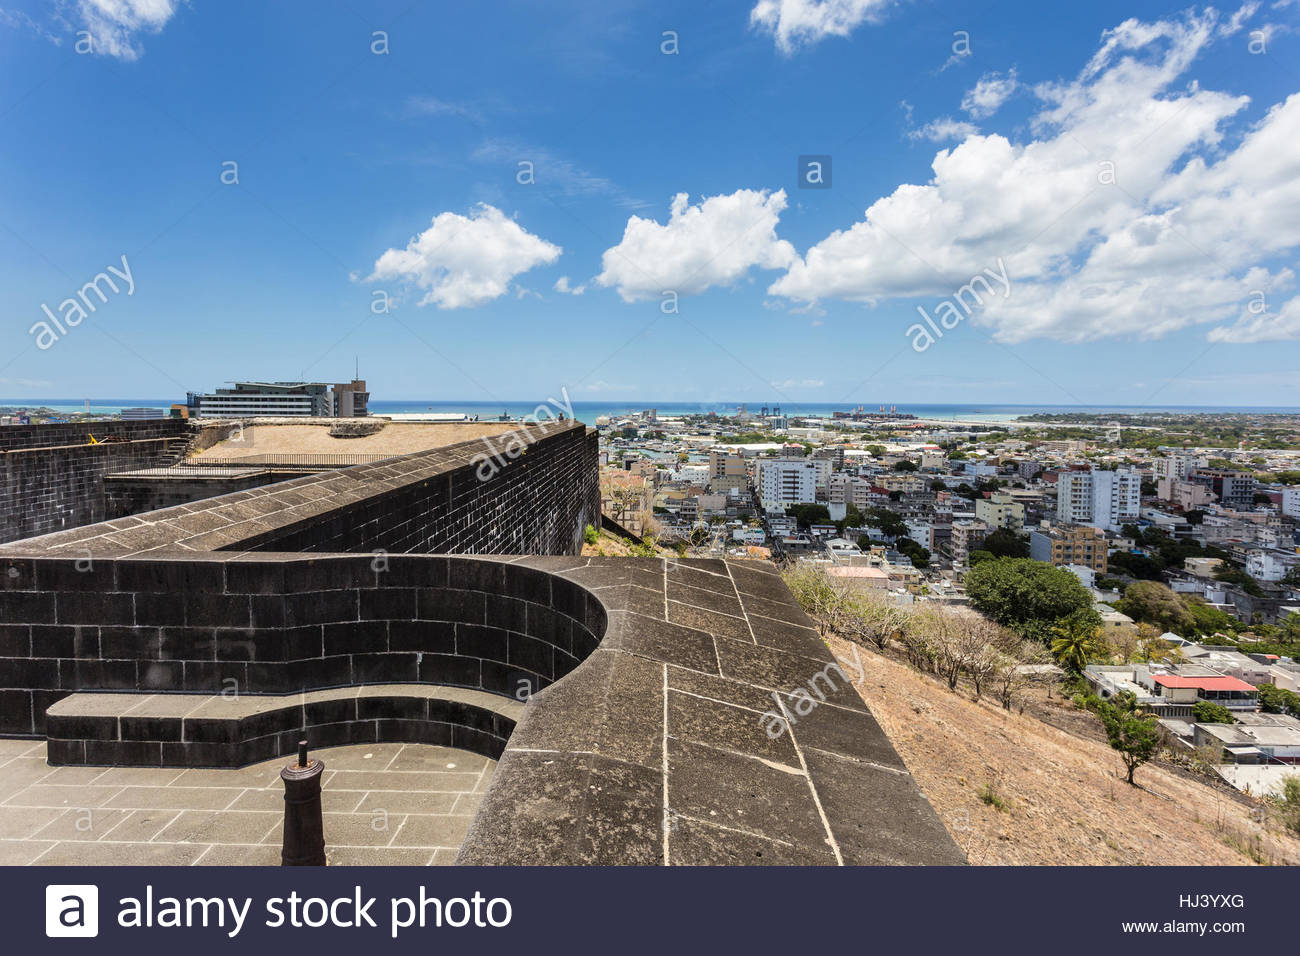 Fort Adelaide Port Louis, Fort Adelaide overlooking the Port Louis city in Mauritius capital ...